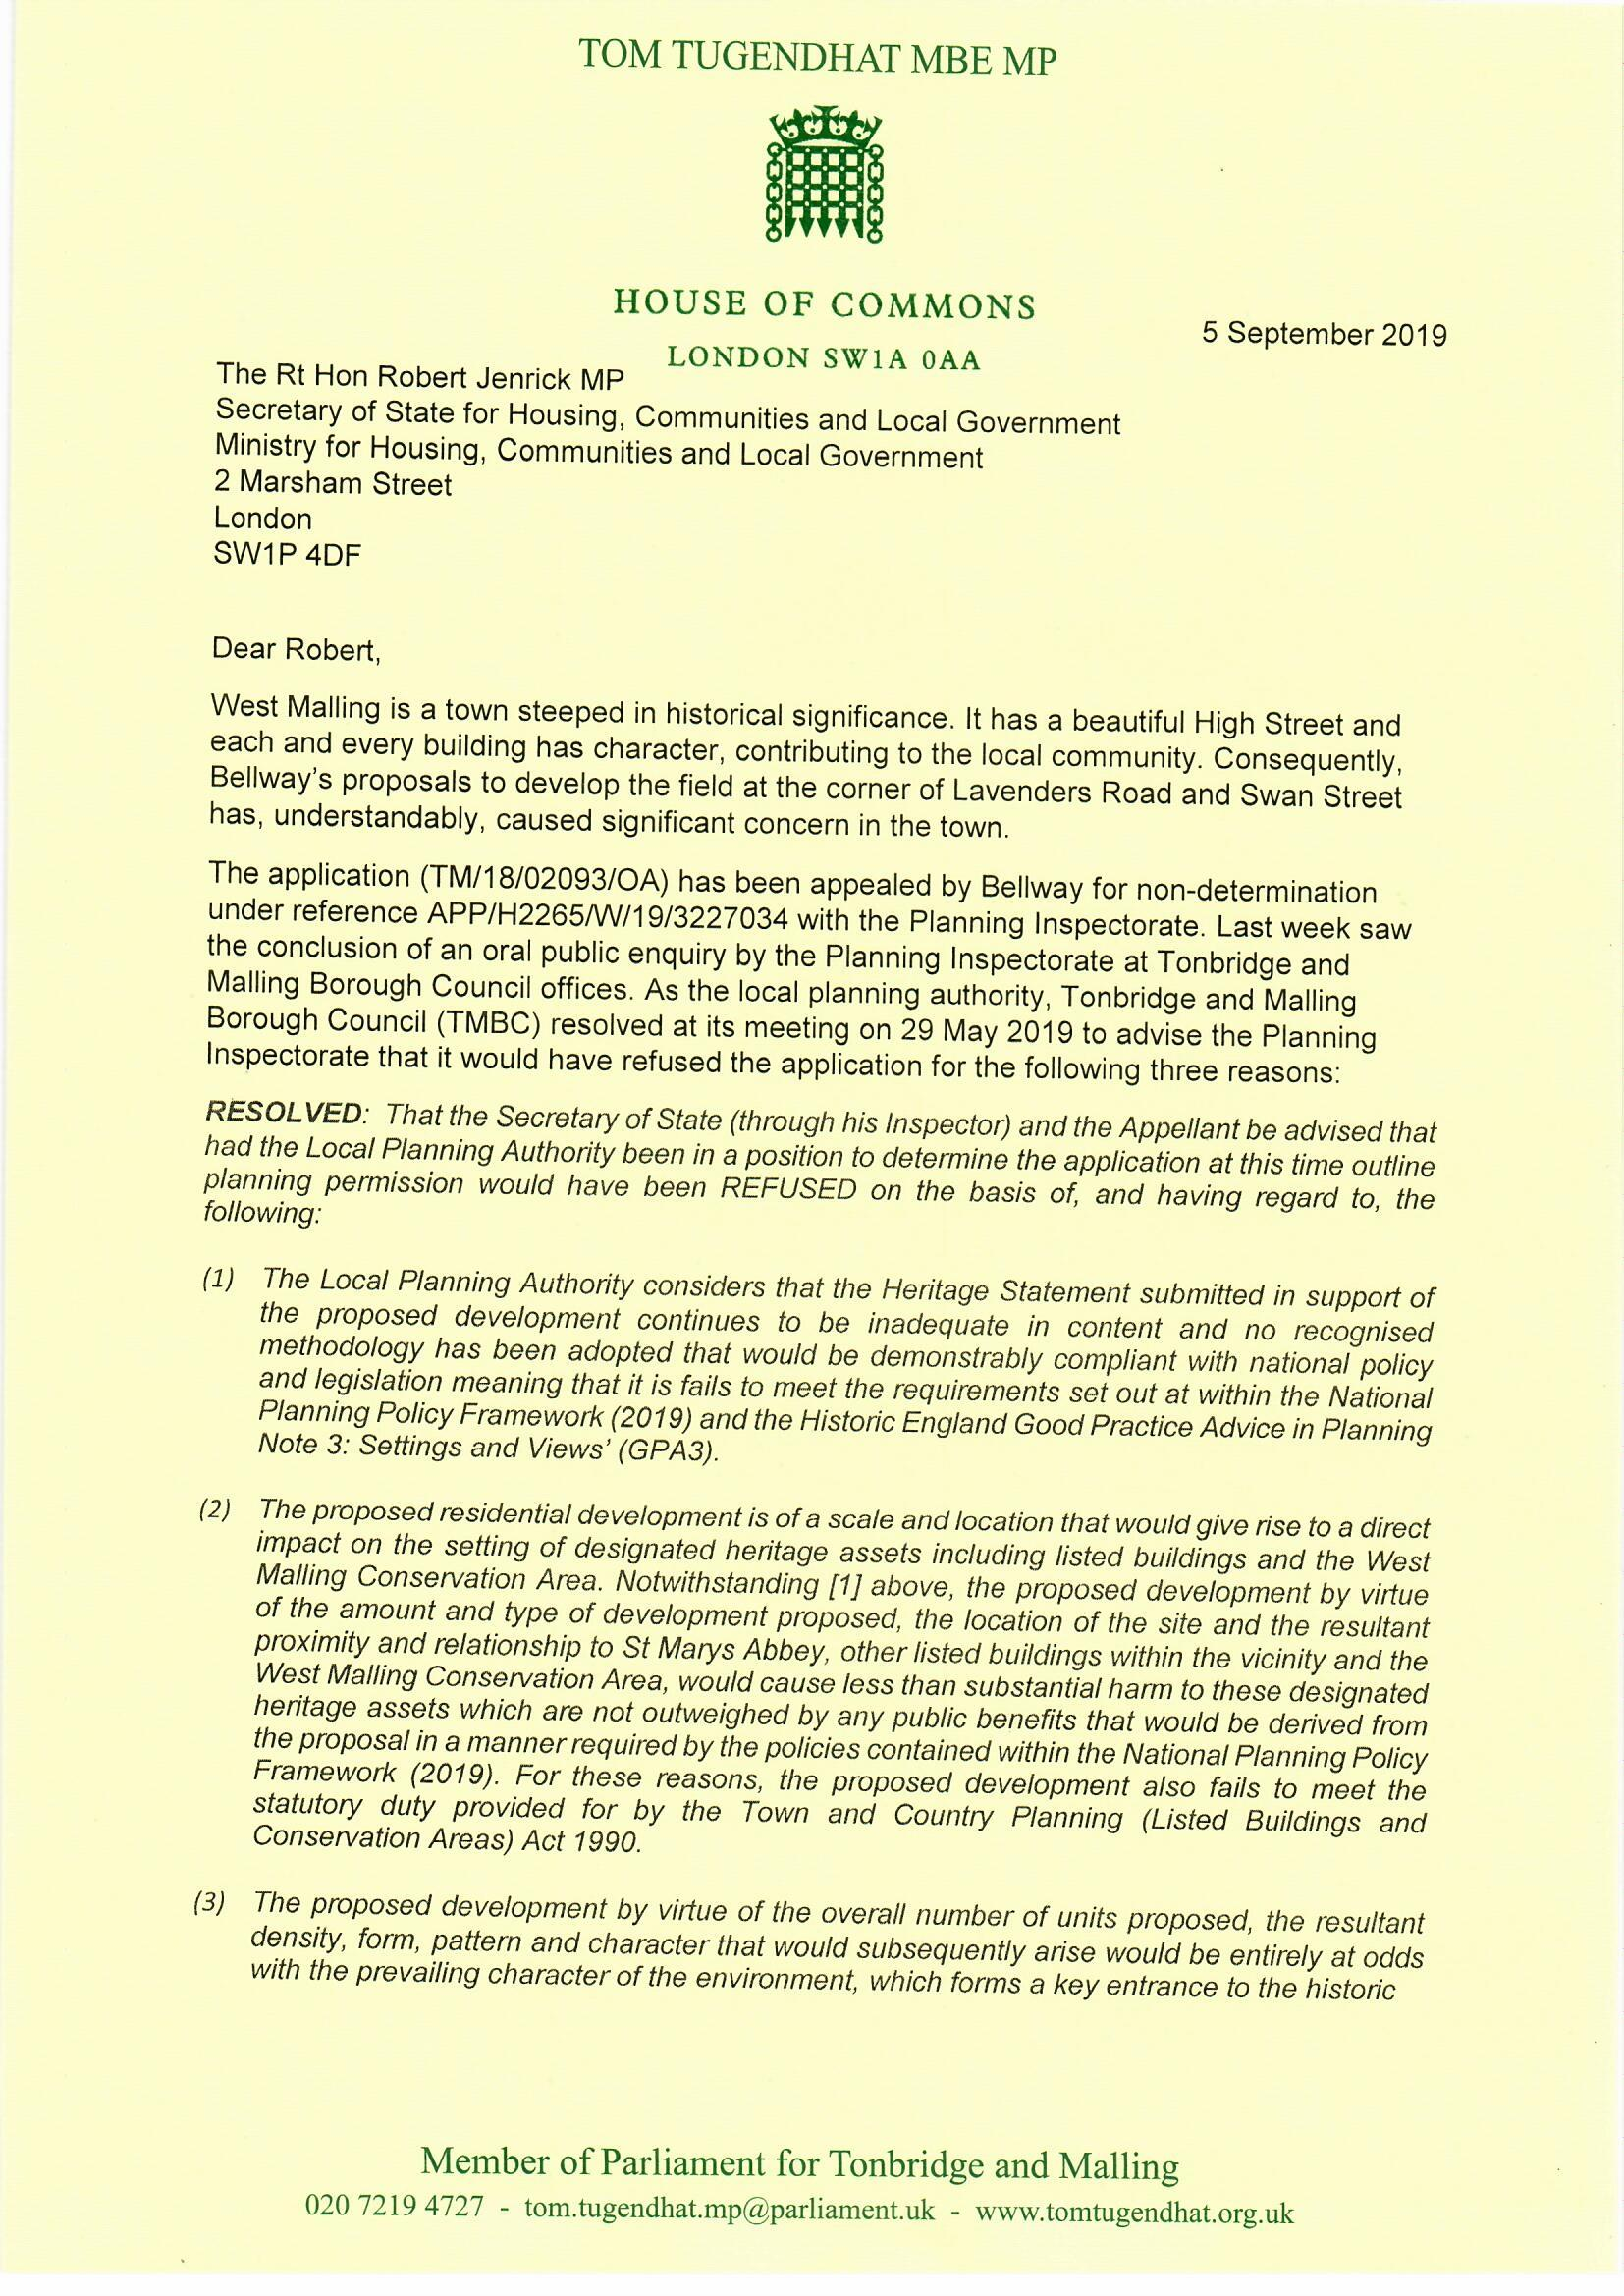 20190905 - Tom Tugendhat to Robert Jenrick, Land east of Lavenders Road and Swan Street, St Mary's Abbey - call in request0001.jpg